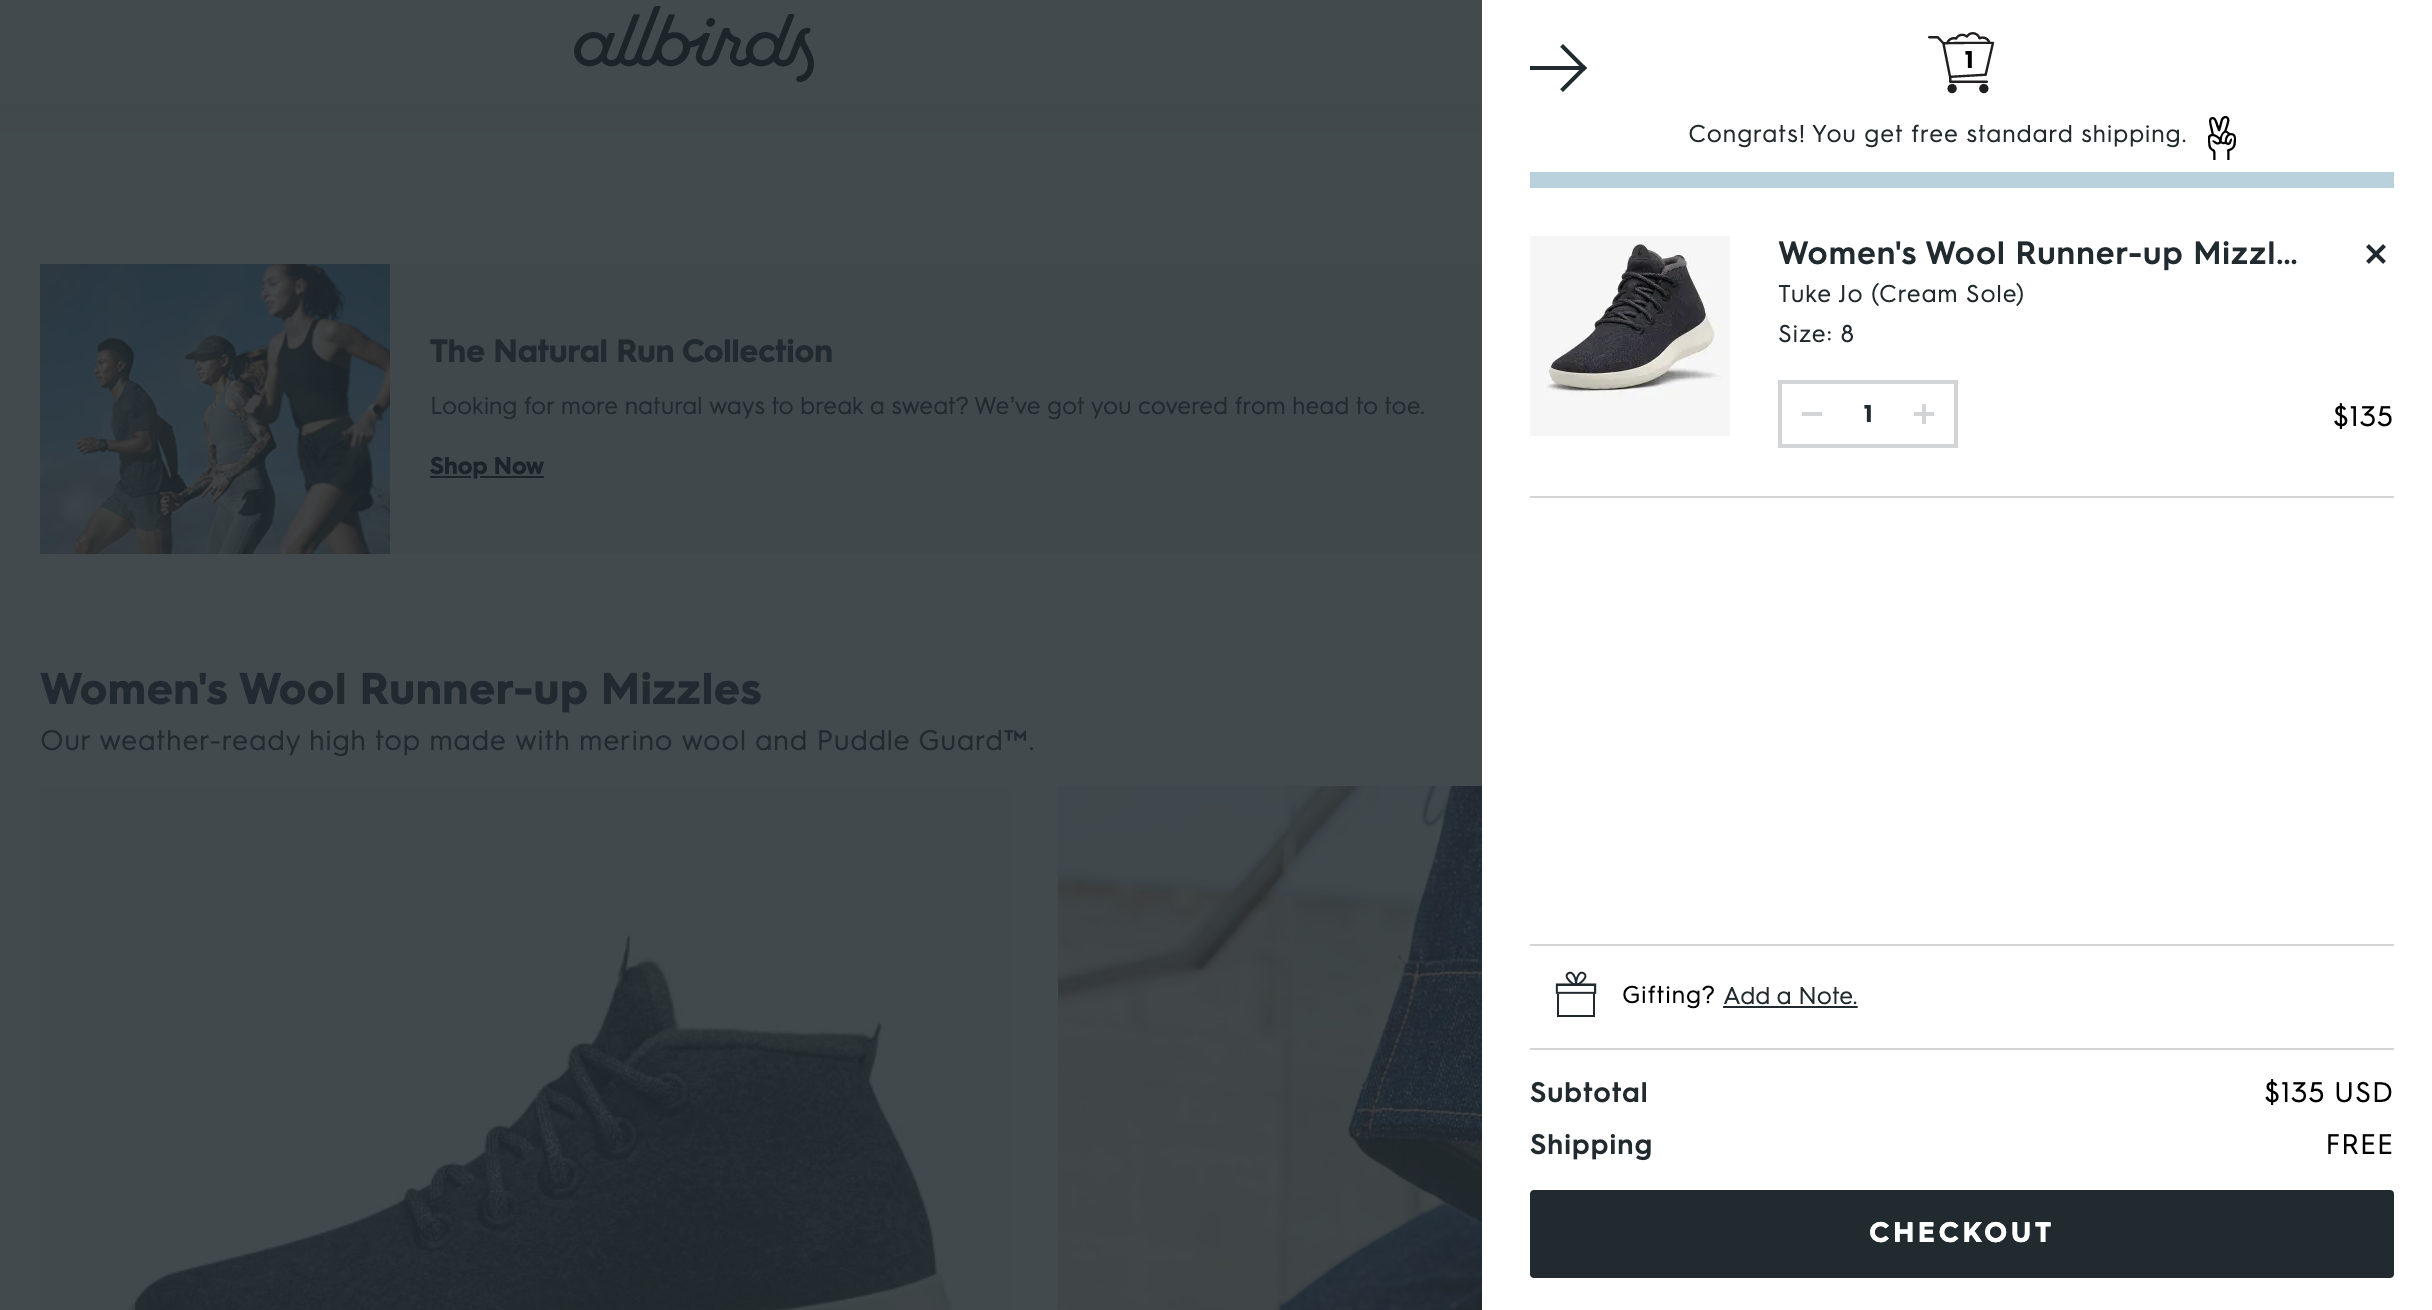 Allbirds' cart checkout message for free shipping